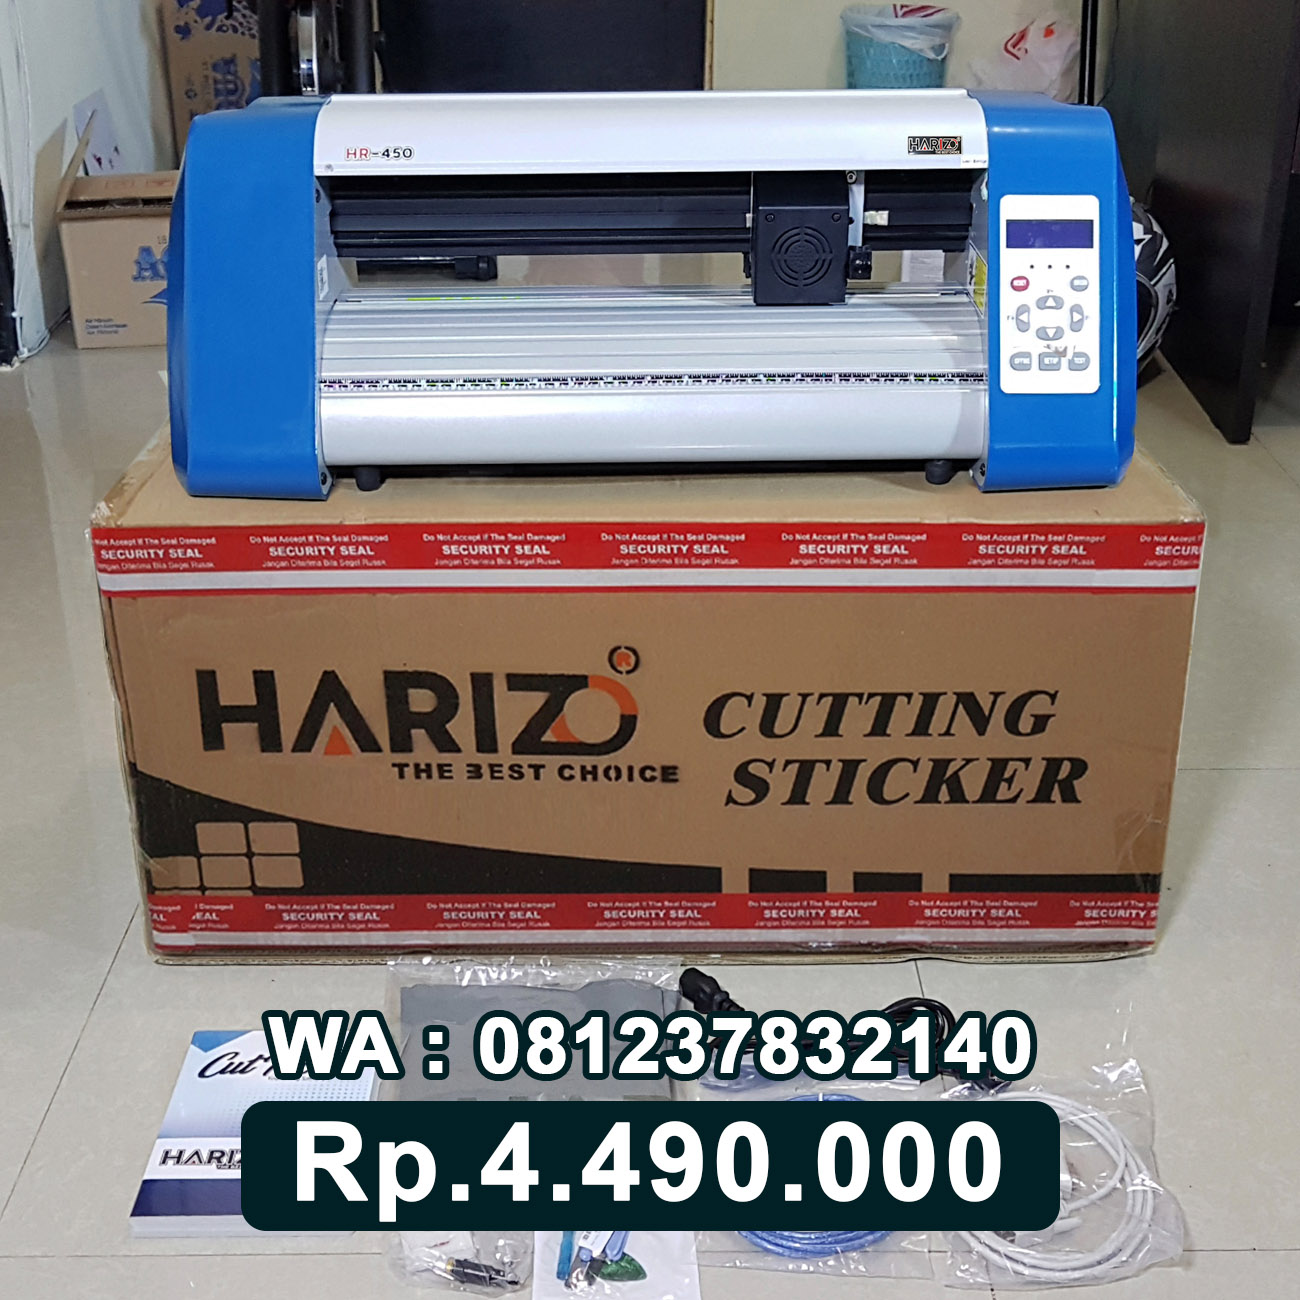 JUAL MESIN CUTTING STICKER HARIZO 450 Tabalong